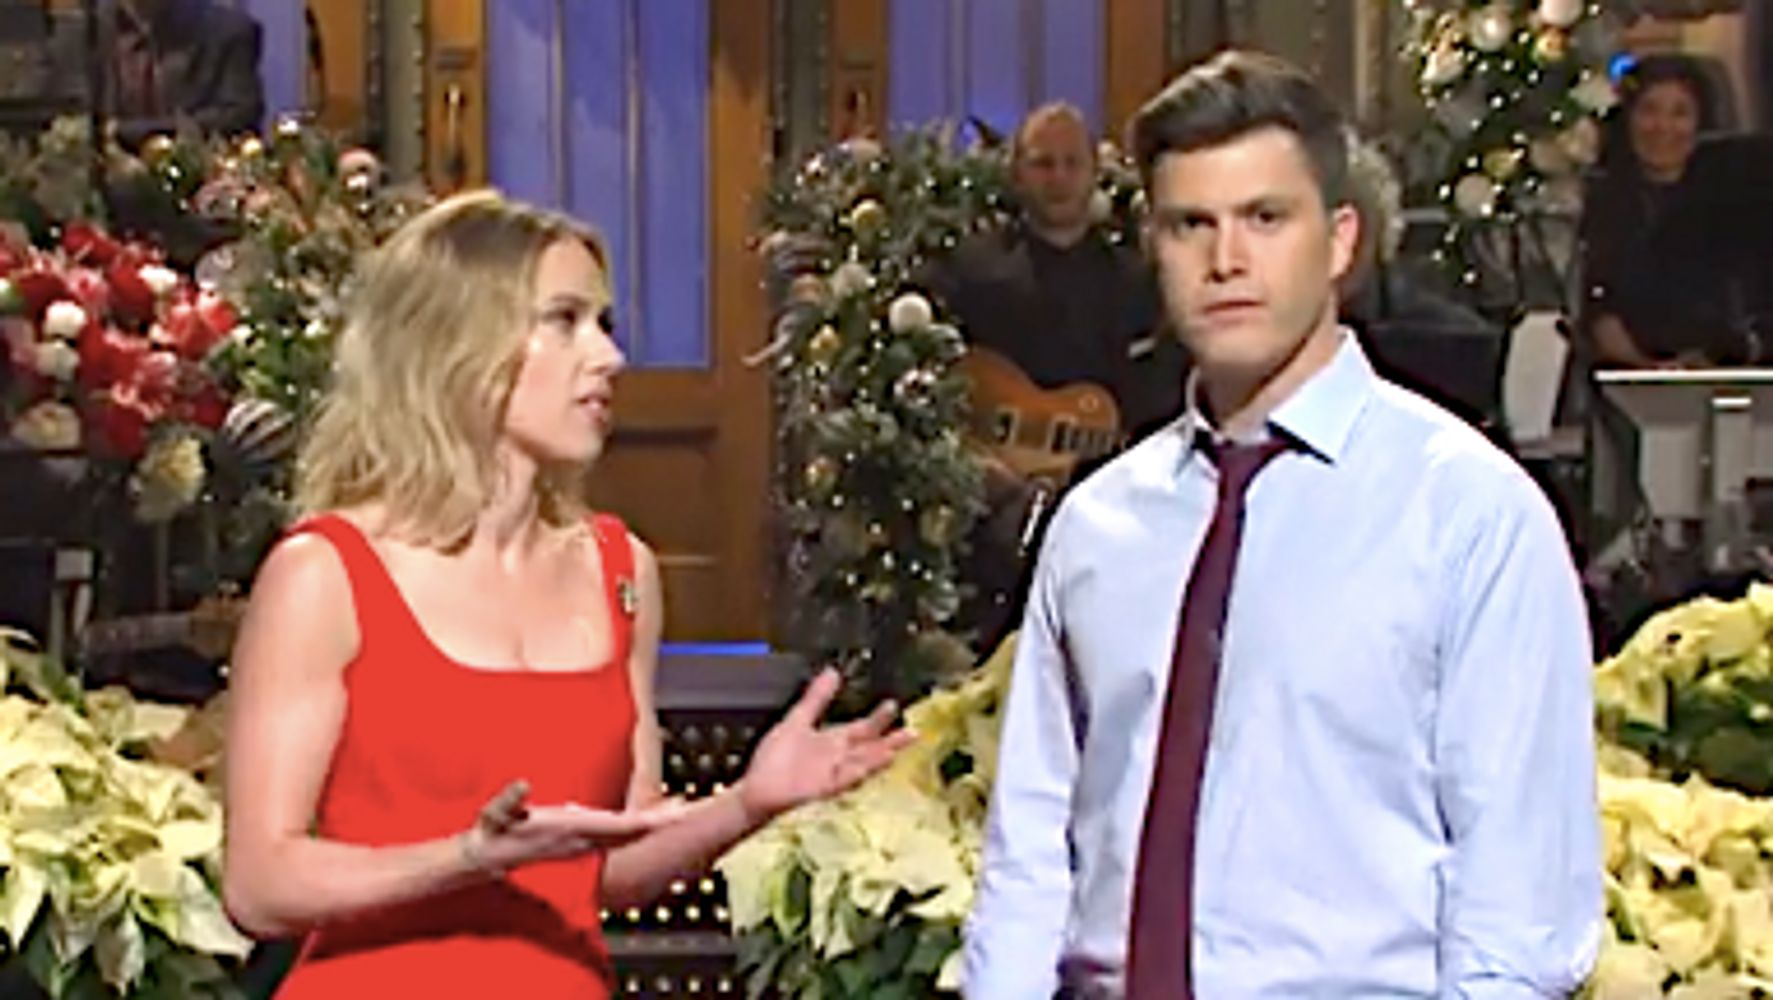 Westlake Legal Group 5df5d7db250000460298e28c Scarlett Johansson Puts It All Out There For Fiancé Colin Jost On 'SNL'